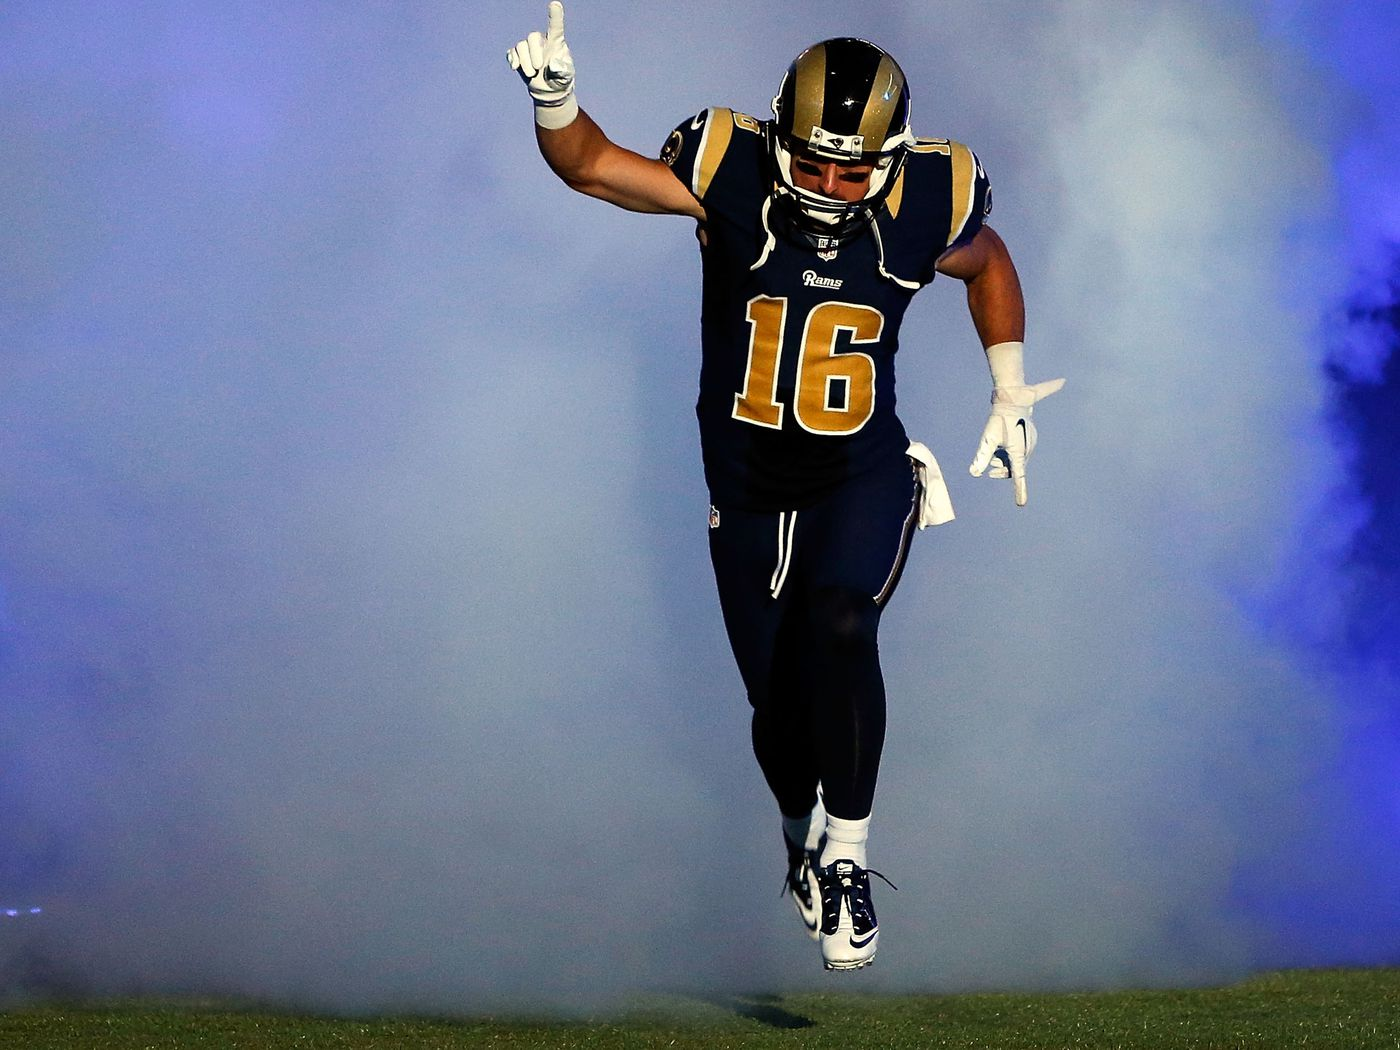 when does nfl free agency start 2013